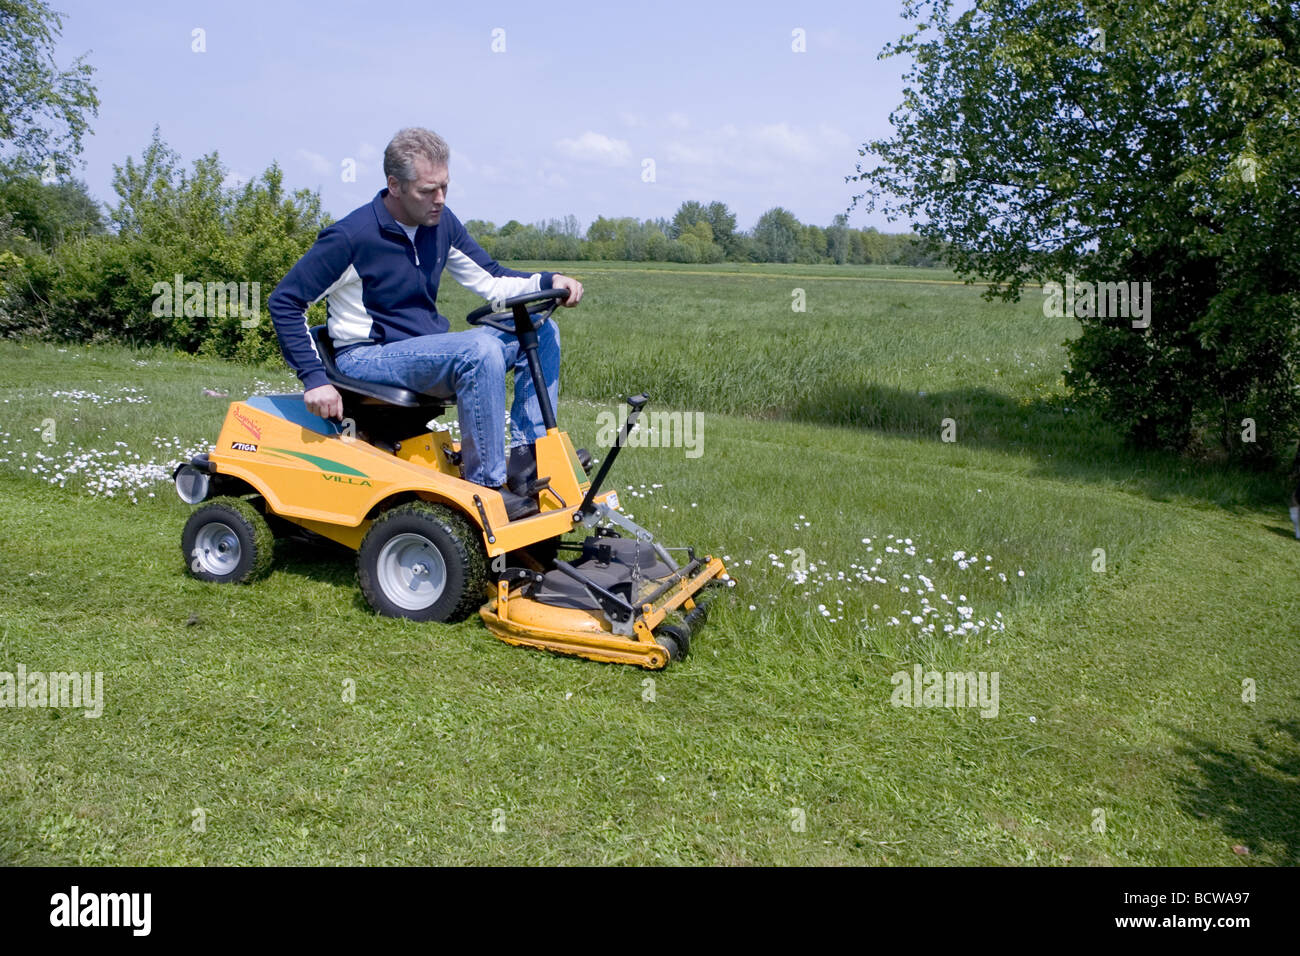 man riding lawn mower. stock photo - white man mowing suburban lawn on a riding mower